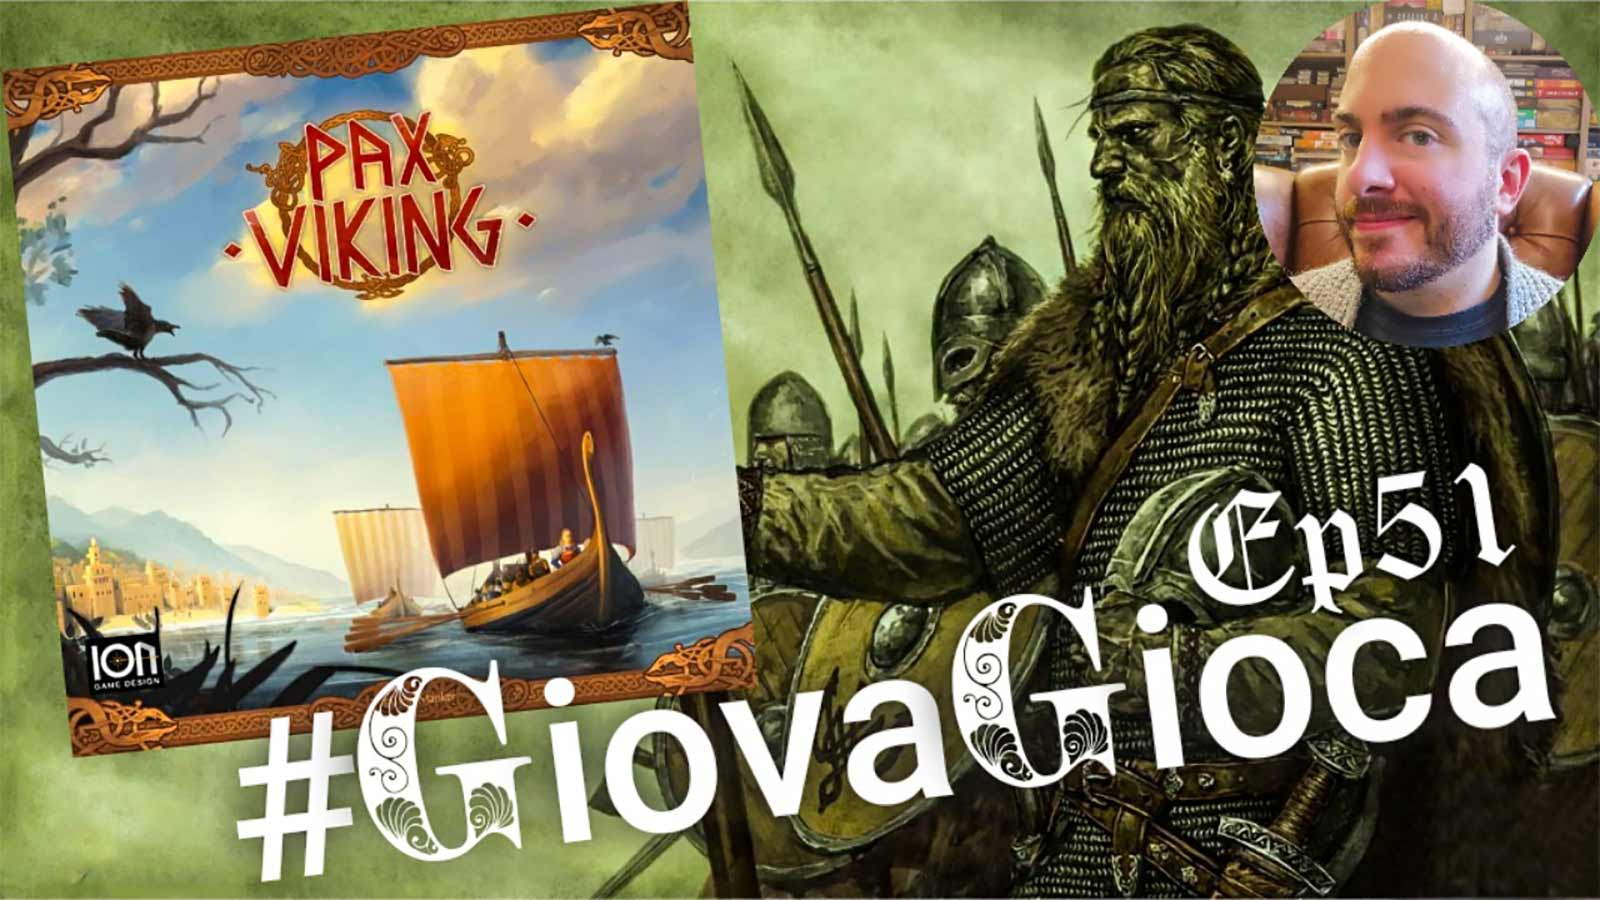 PAX VIKING – Boardgame Review